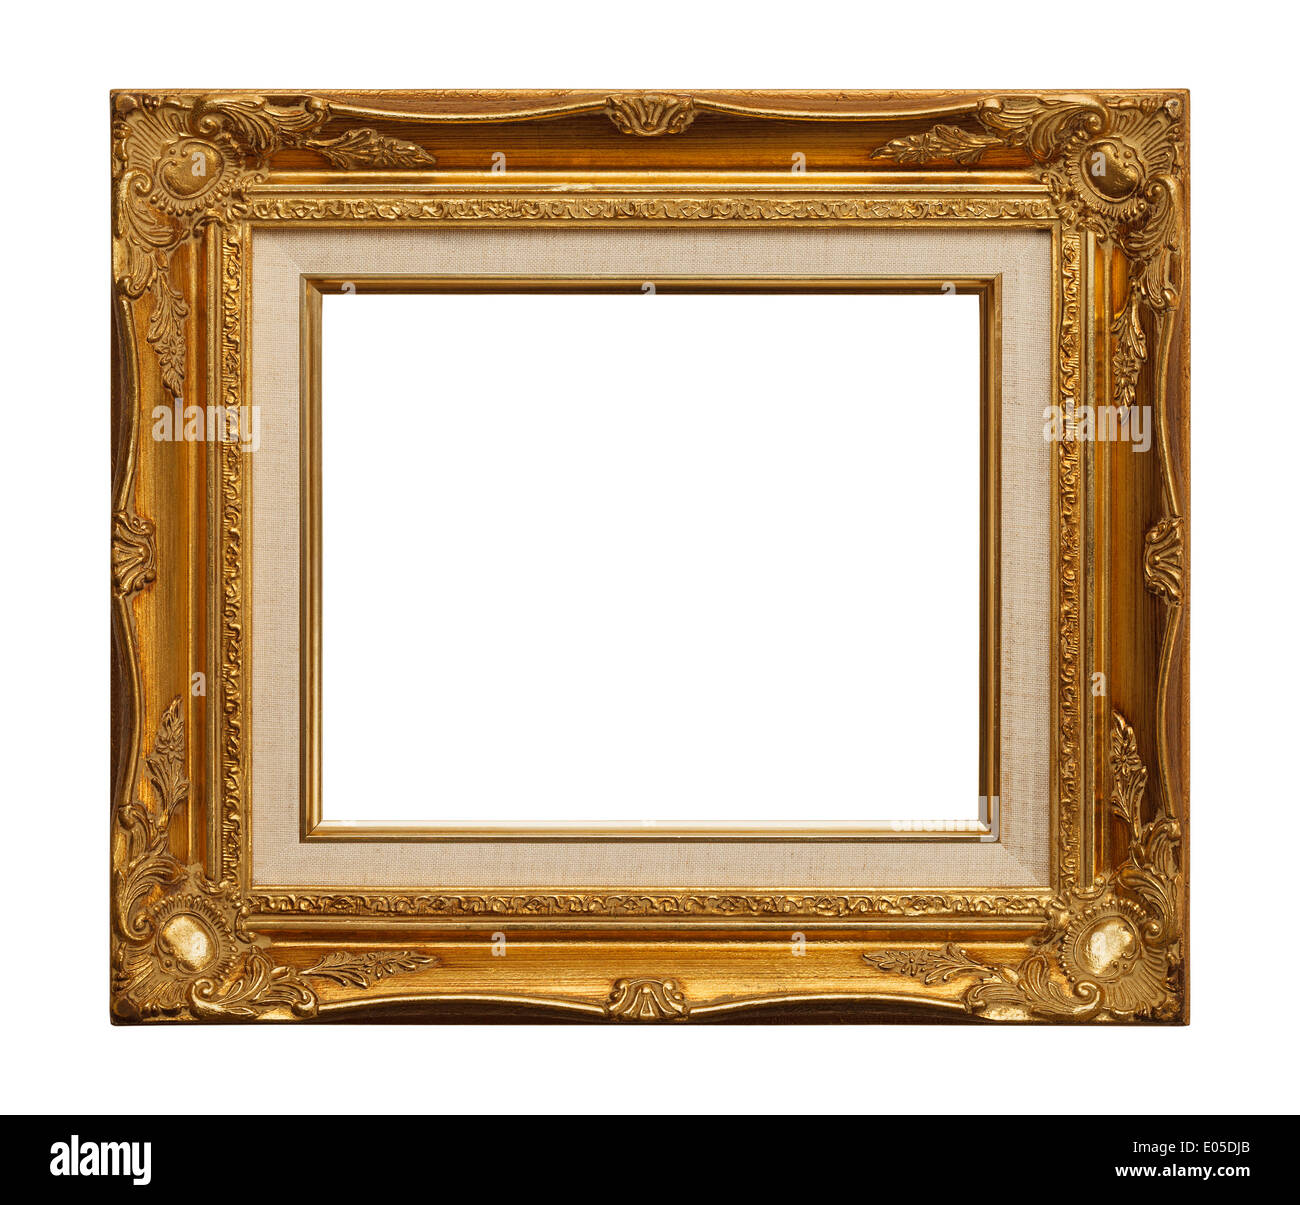 Retro Ornate Gold Leaf Frame Isolated on White Background Stock ...